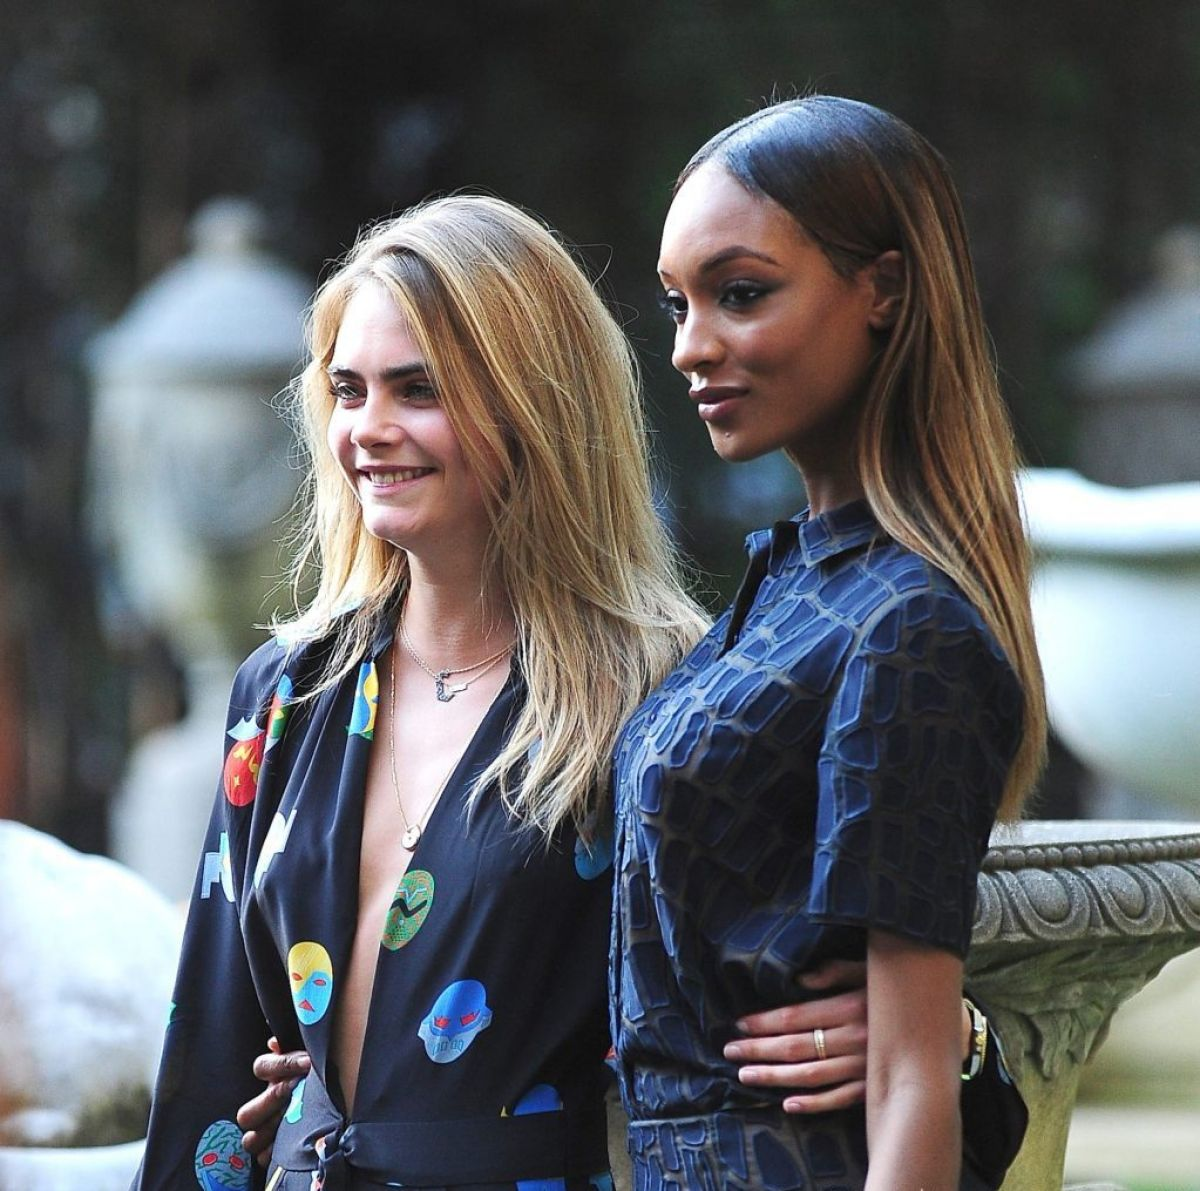 BFFs for life Cara Delevingne and Jourdan Dunn get